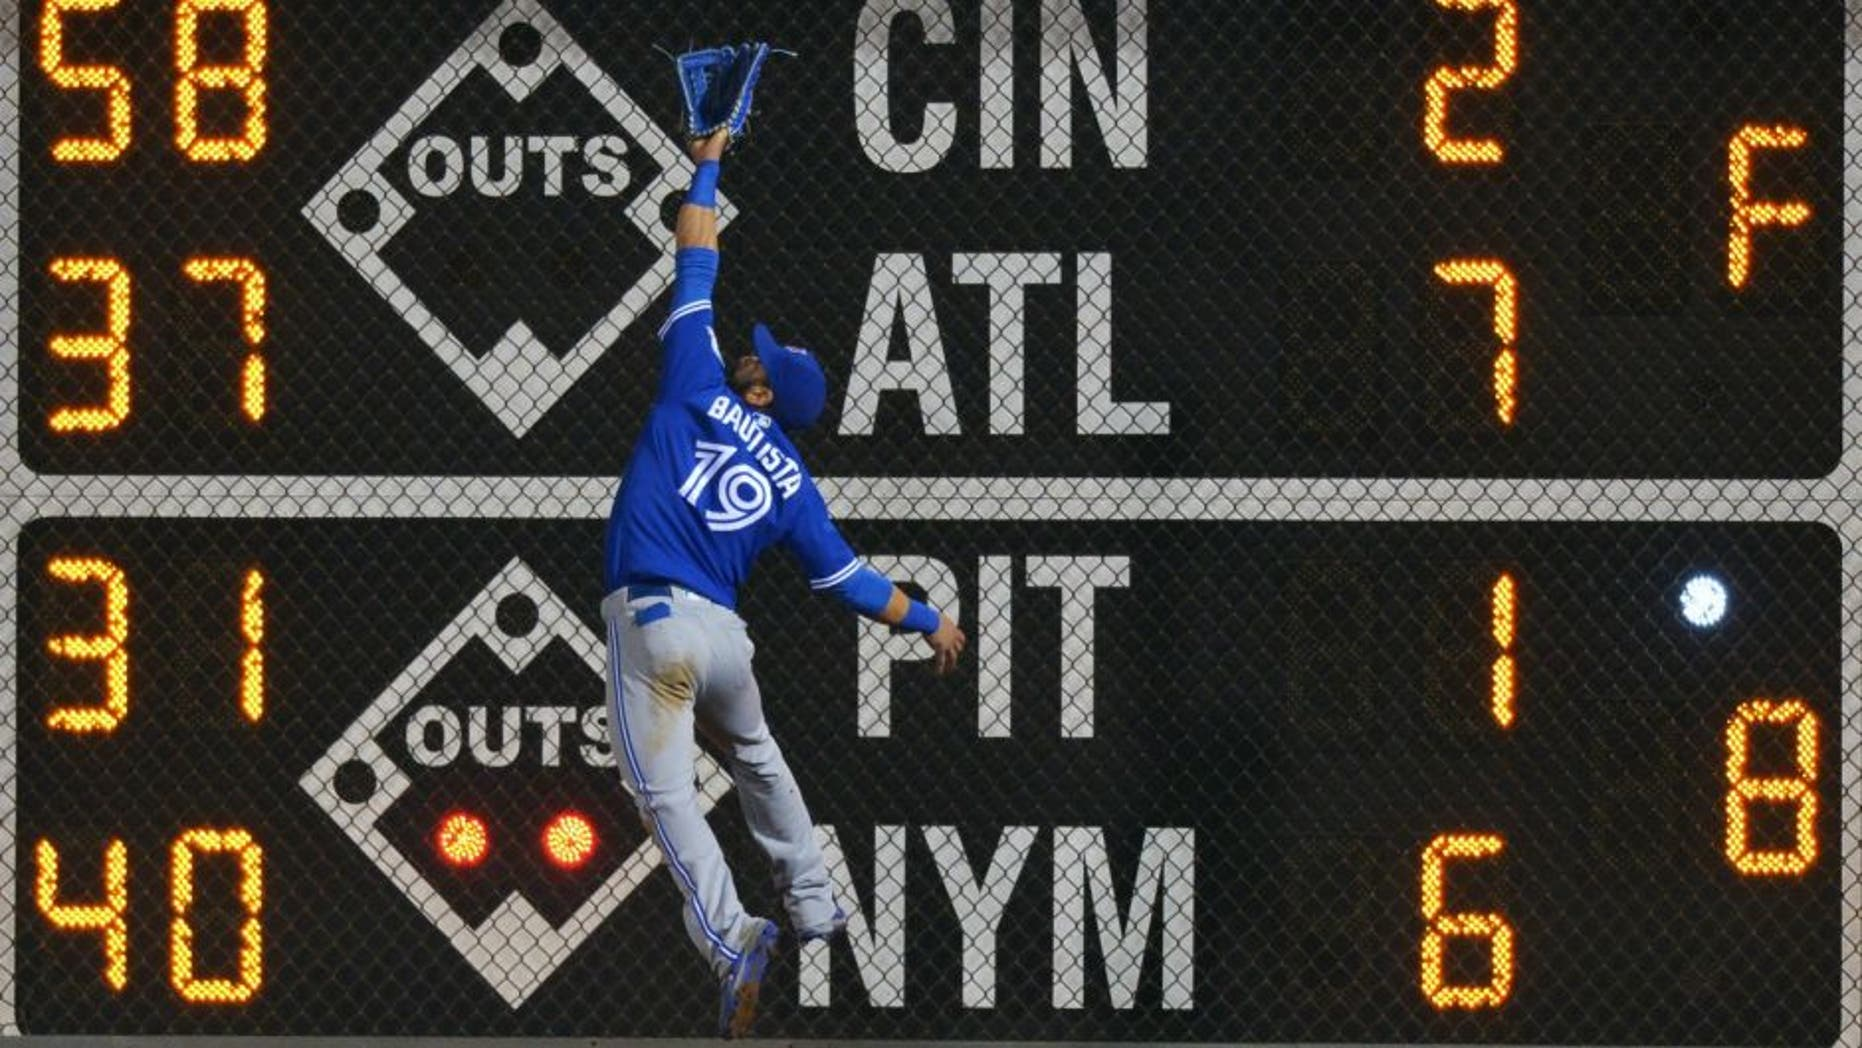 PHILADELPHIA, PA - JUNE 16: Jose Bautista #19 of the Toronto Blue Jays jumps for a fly ball but is unable to make the catch in the seventh inning against the Philadelphia Phillies at Citizens Bank Park on June 16, 2016 in Philadelphia, Pennsylvania. Bautista was injured on the play. (Photo by Drew Hallowell/Getty Images)